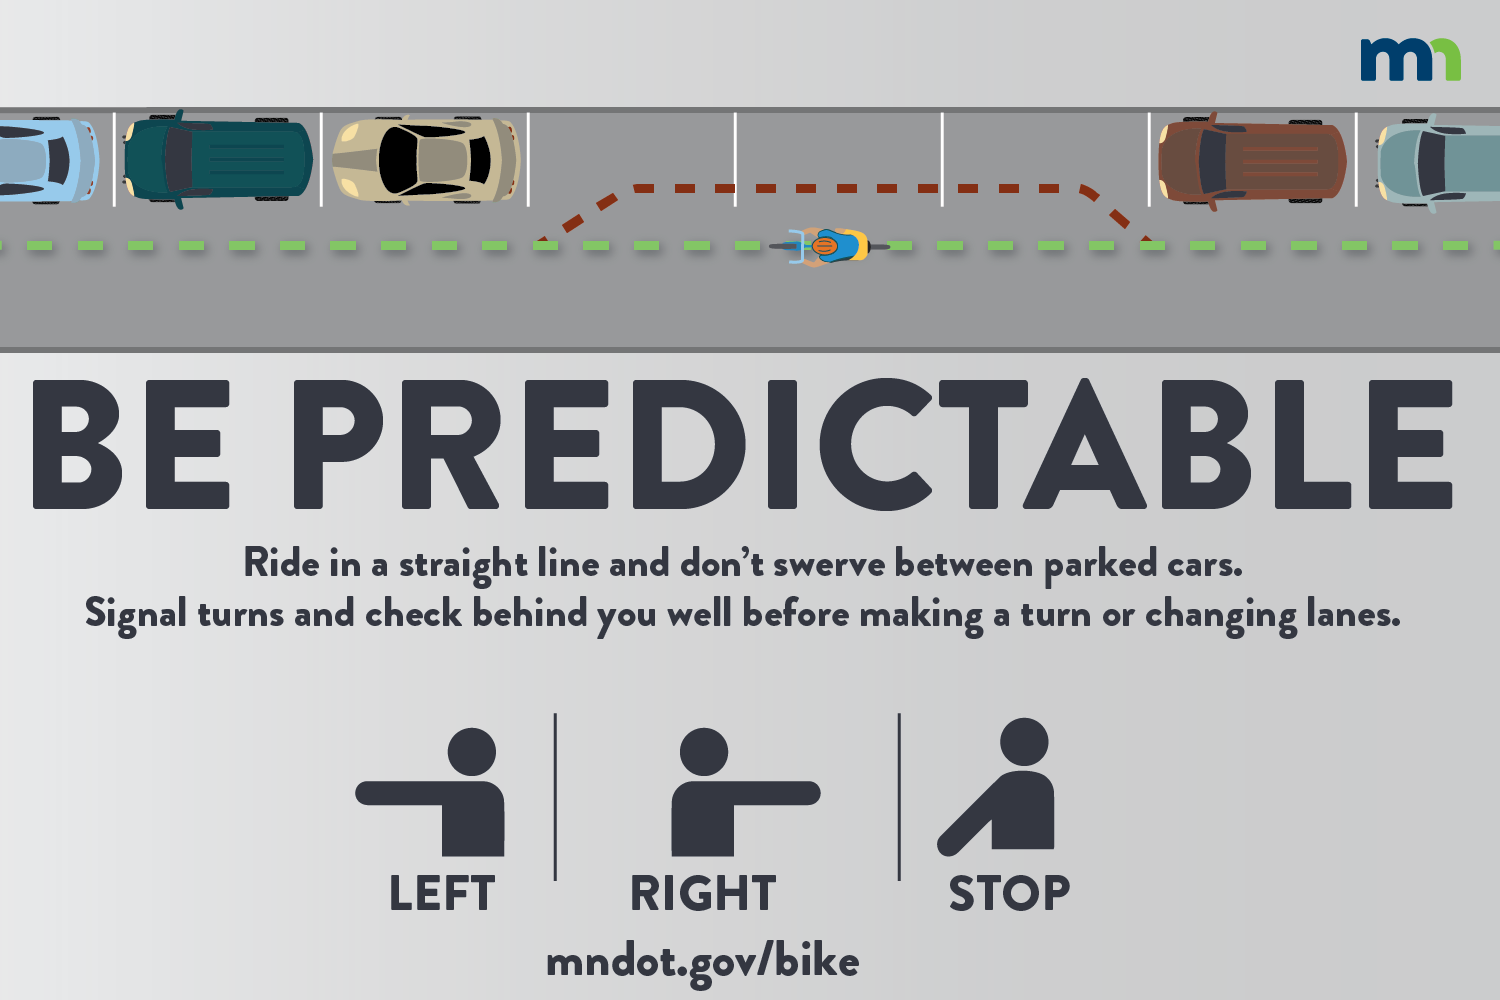 Be predictable:  If you bike, ride in a straight line and don't swerve between parked cars. Signal your turns and check behind you as well before making a turn or changing lanes.